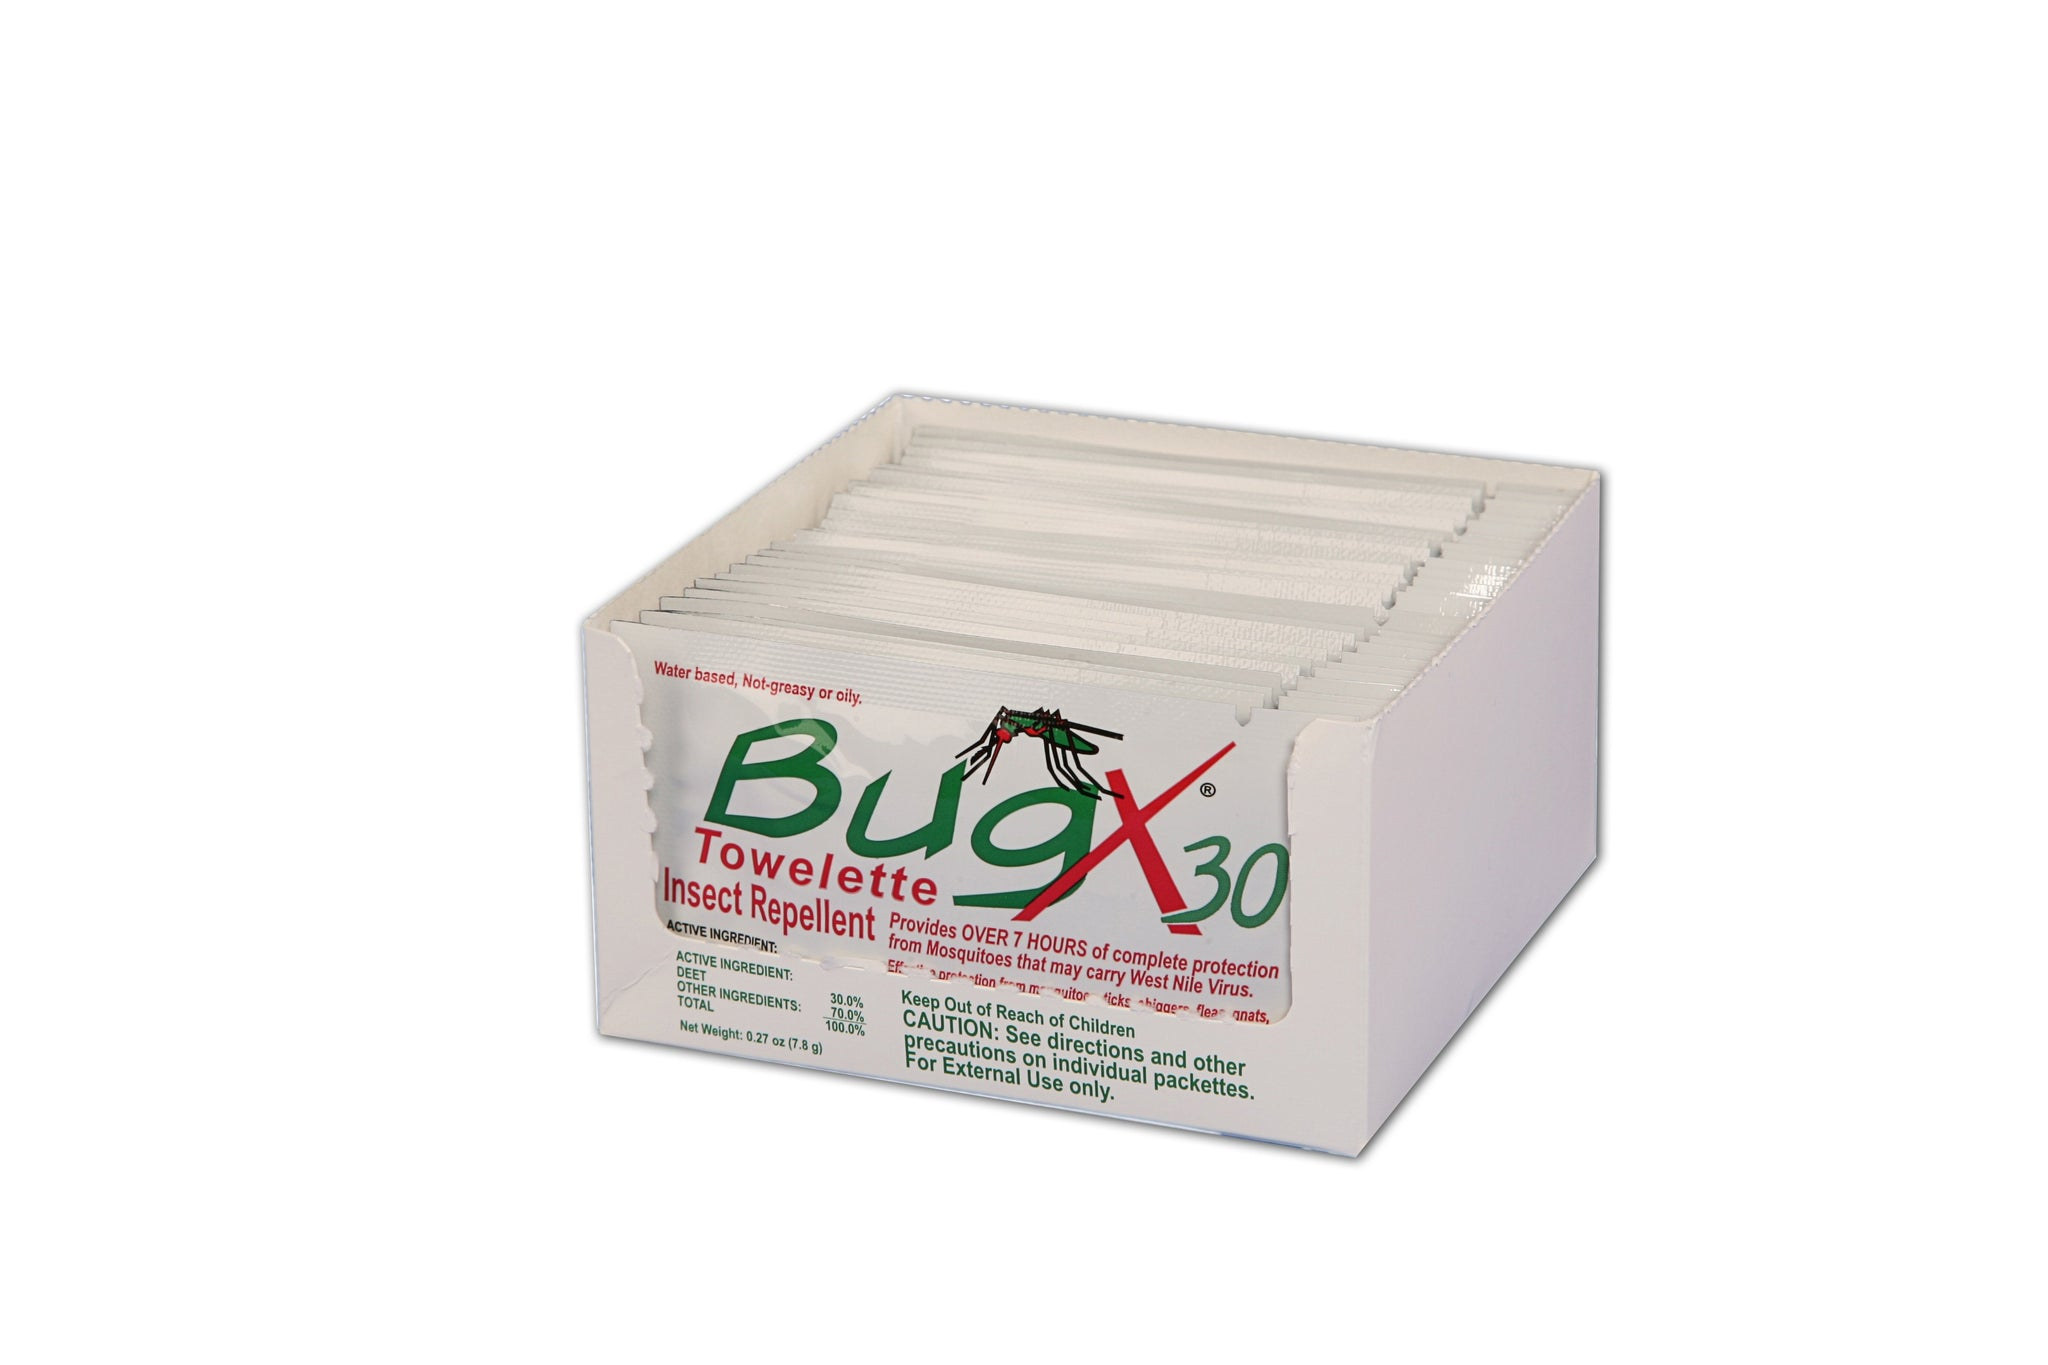 BugX30 Insect Repellent Wipes DEET, 25 Per Box - BS-FAK-18-725-1-FM